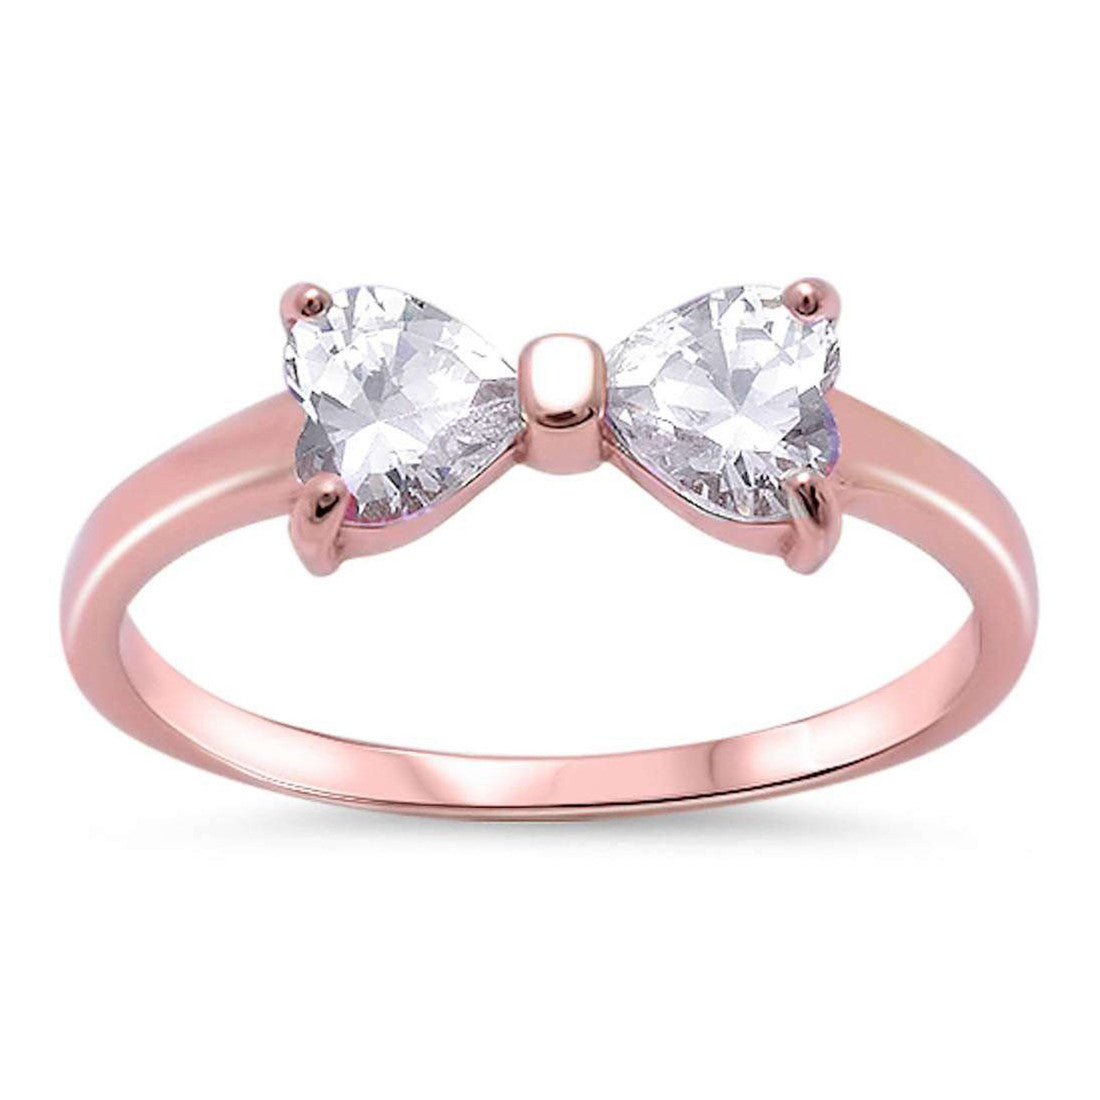 lightbox silver pink ct sterling nadine jardin product wedding rings crown ring heart topaz